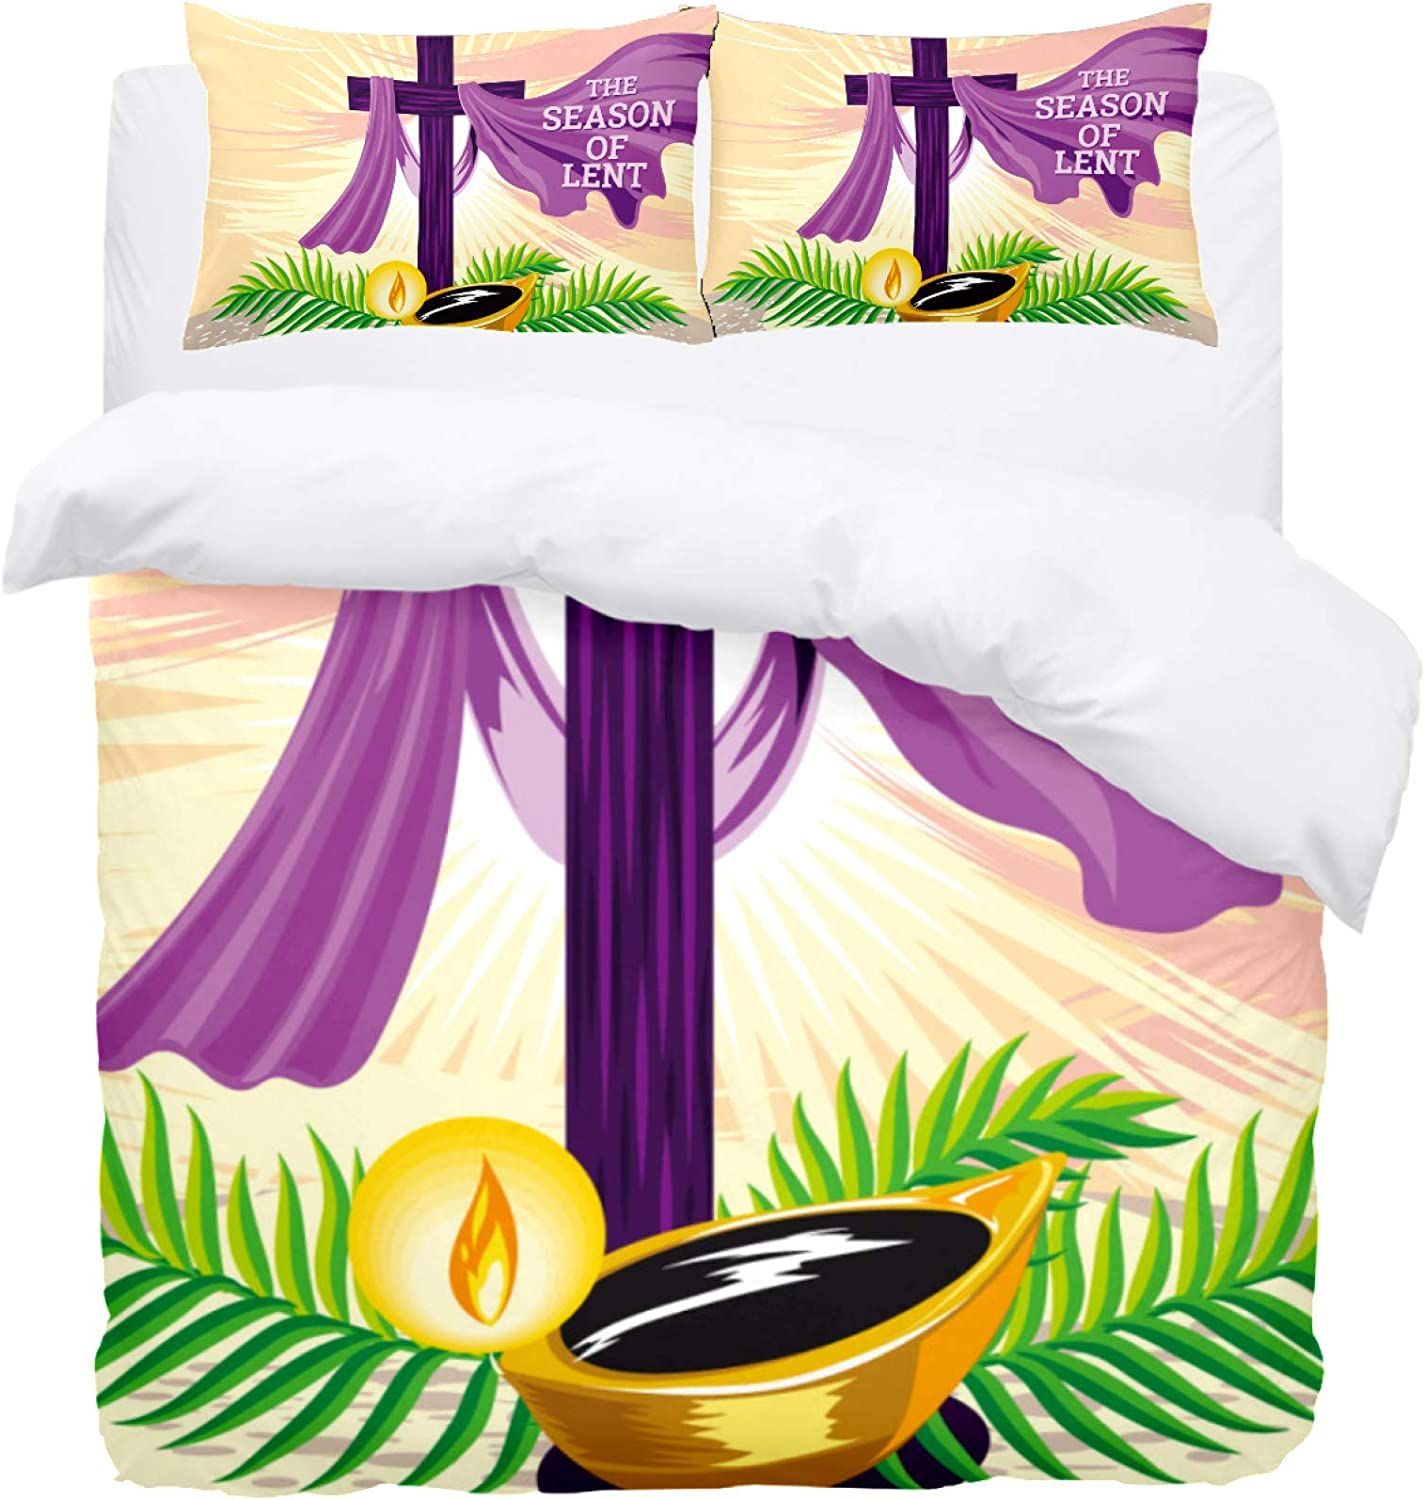 DEYYA Bedding Duvet Cover Set Holy Week. The Time of Lent. 3 Piece Microfiber Down Comforter Quilt Cover with Zipper Closure Ties for Men Women Teens